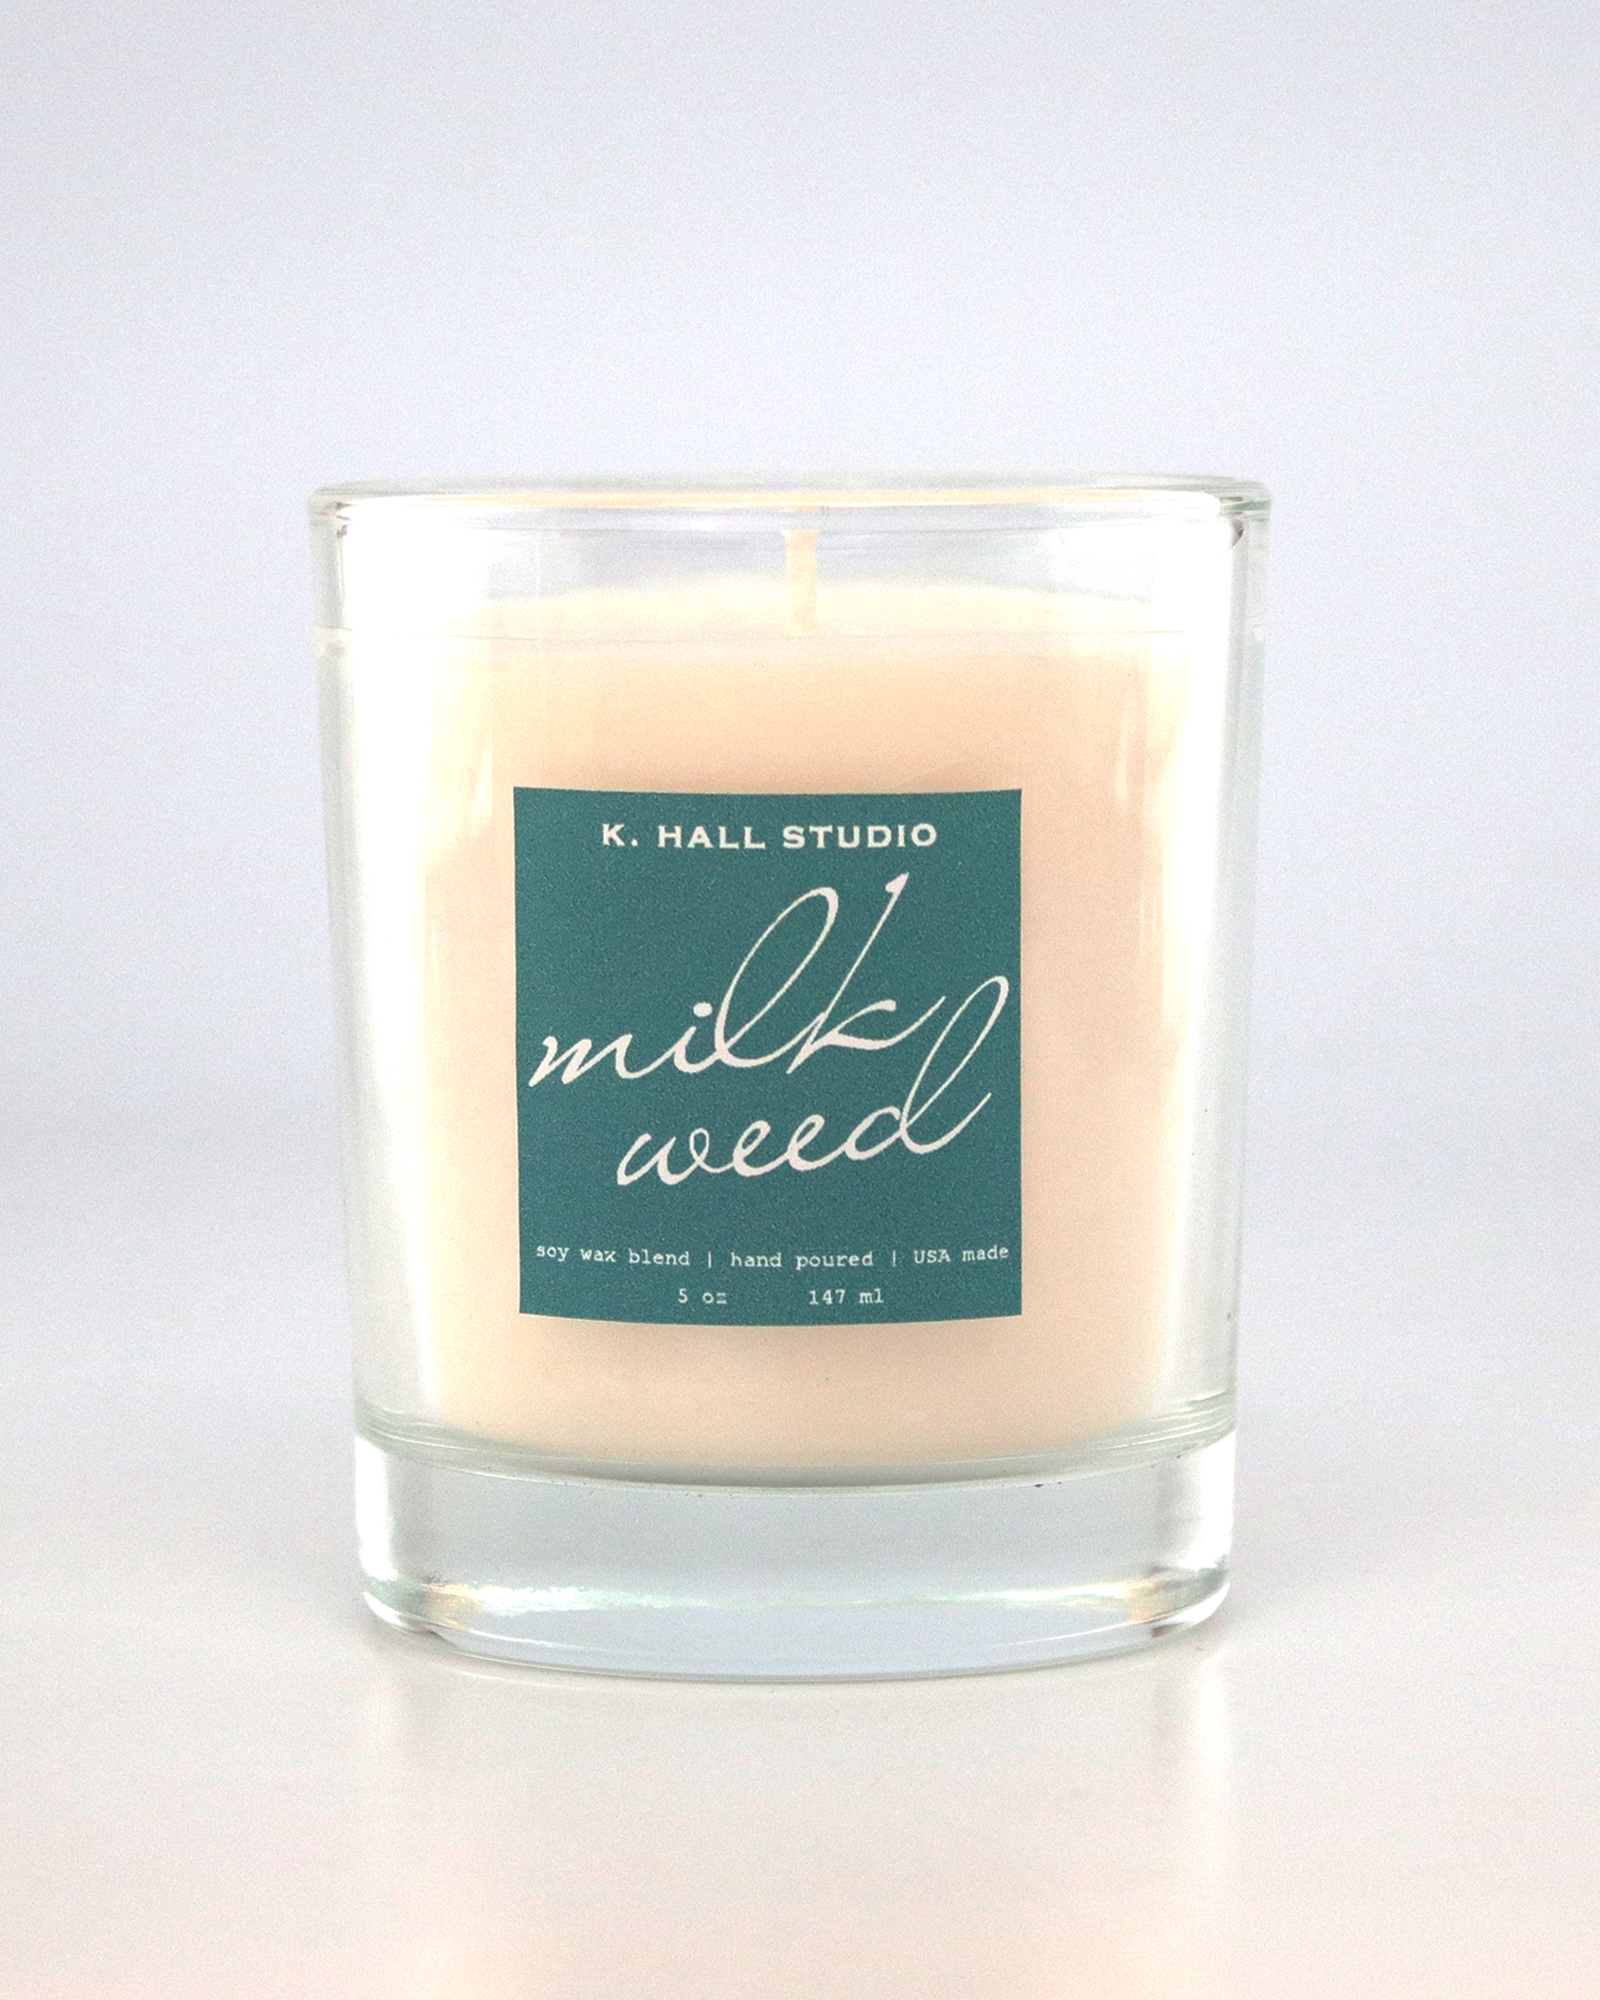 Milkweed candle with dark teal label